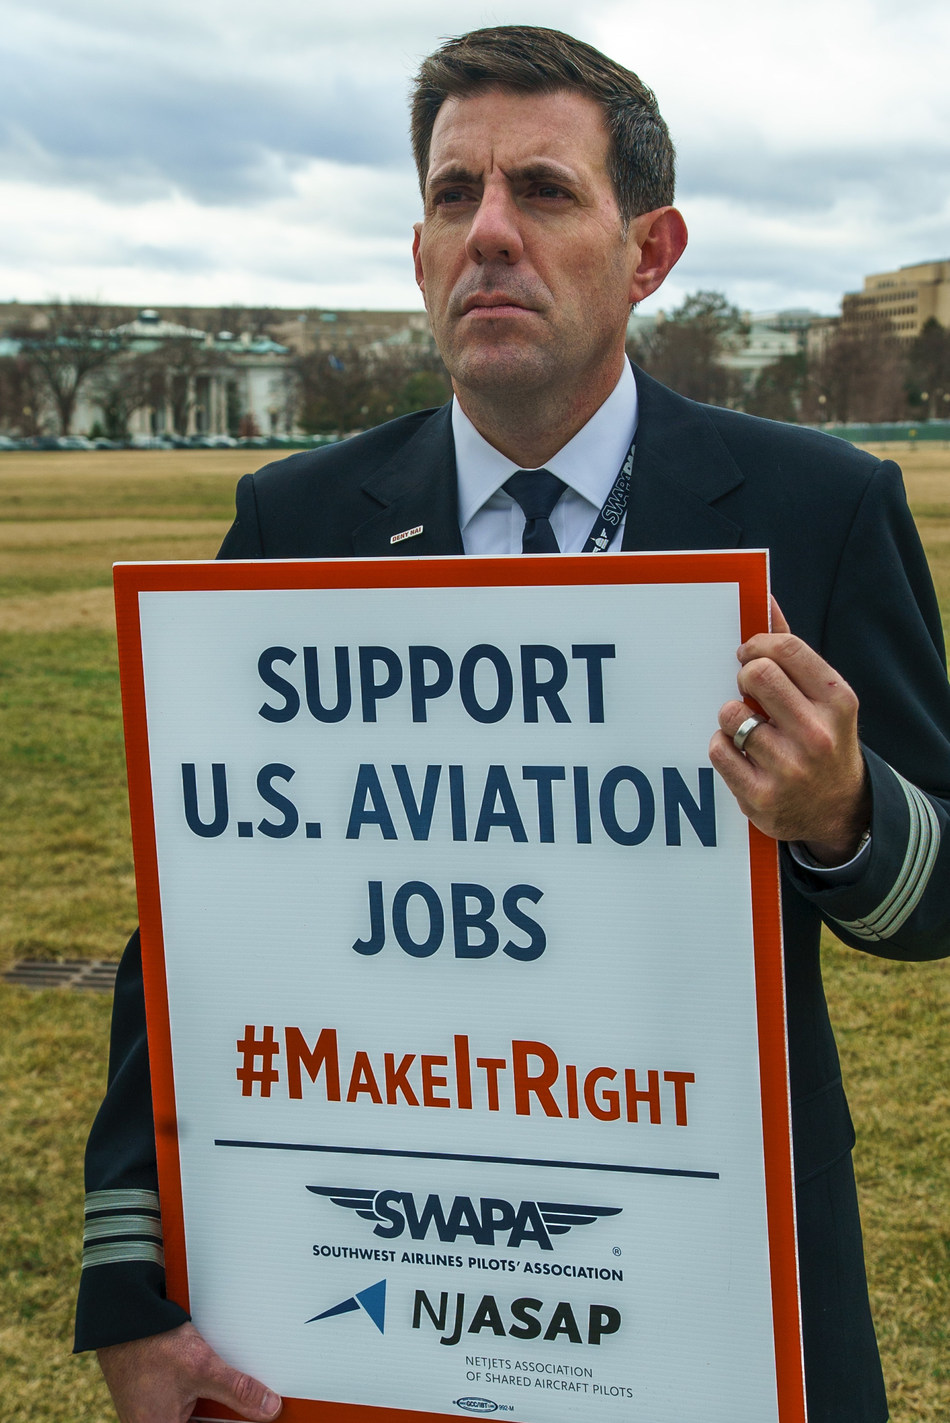 Southwest FO Derek Tate joins more than 140 of his aviation peers in urging the Trump administration to deny a scheme by Norwegian Air International to claim a foothold in the U.S. aviation industry.